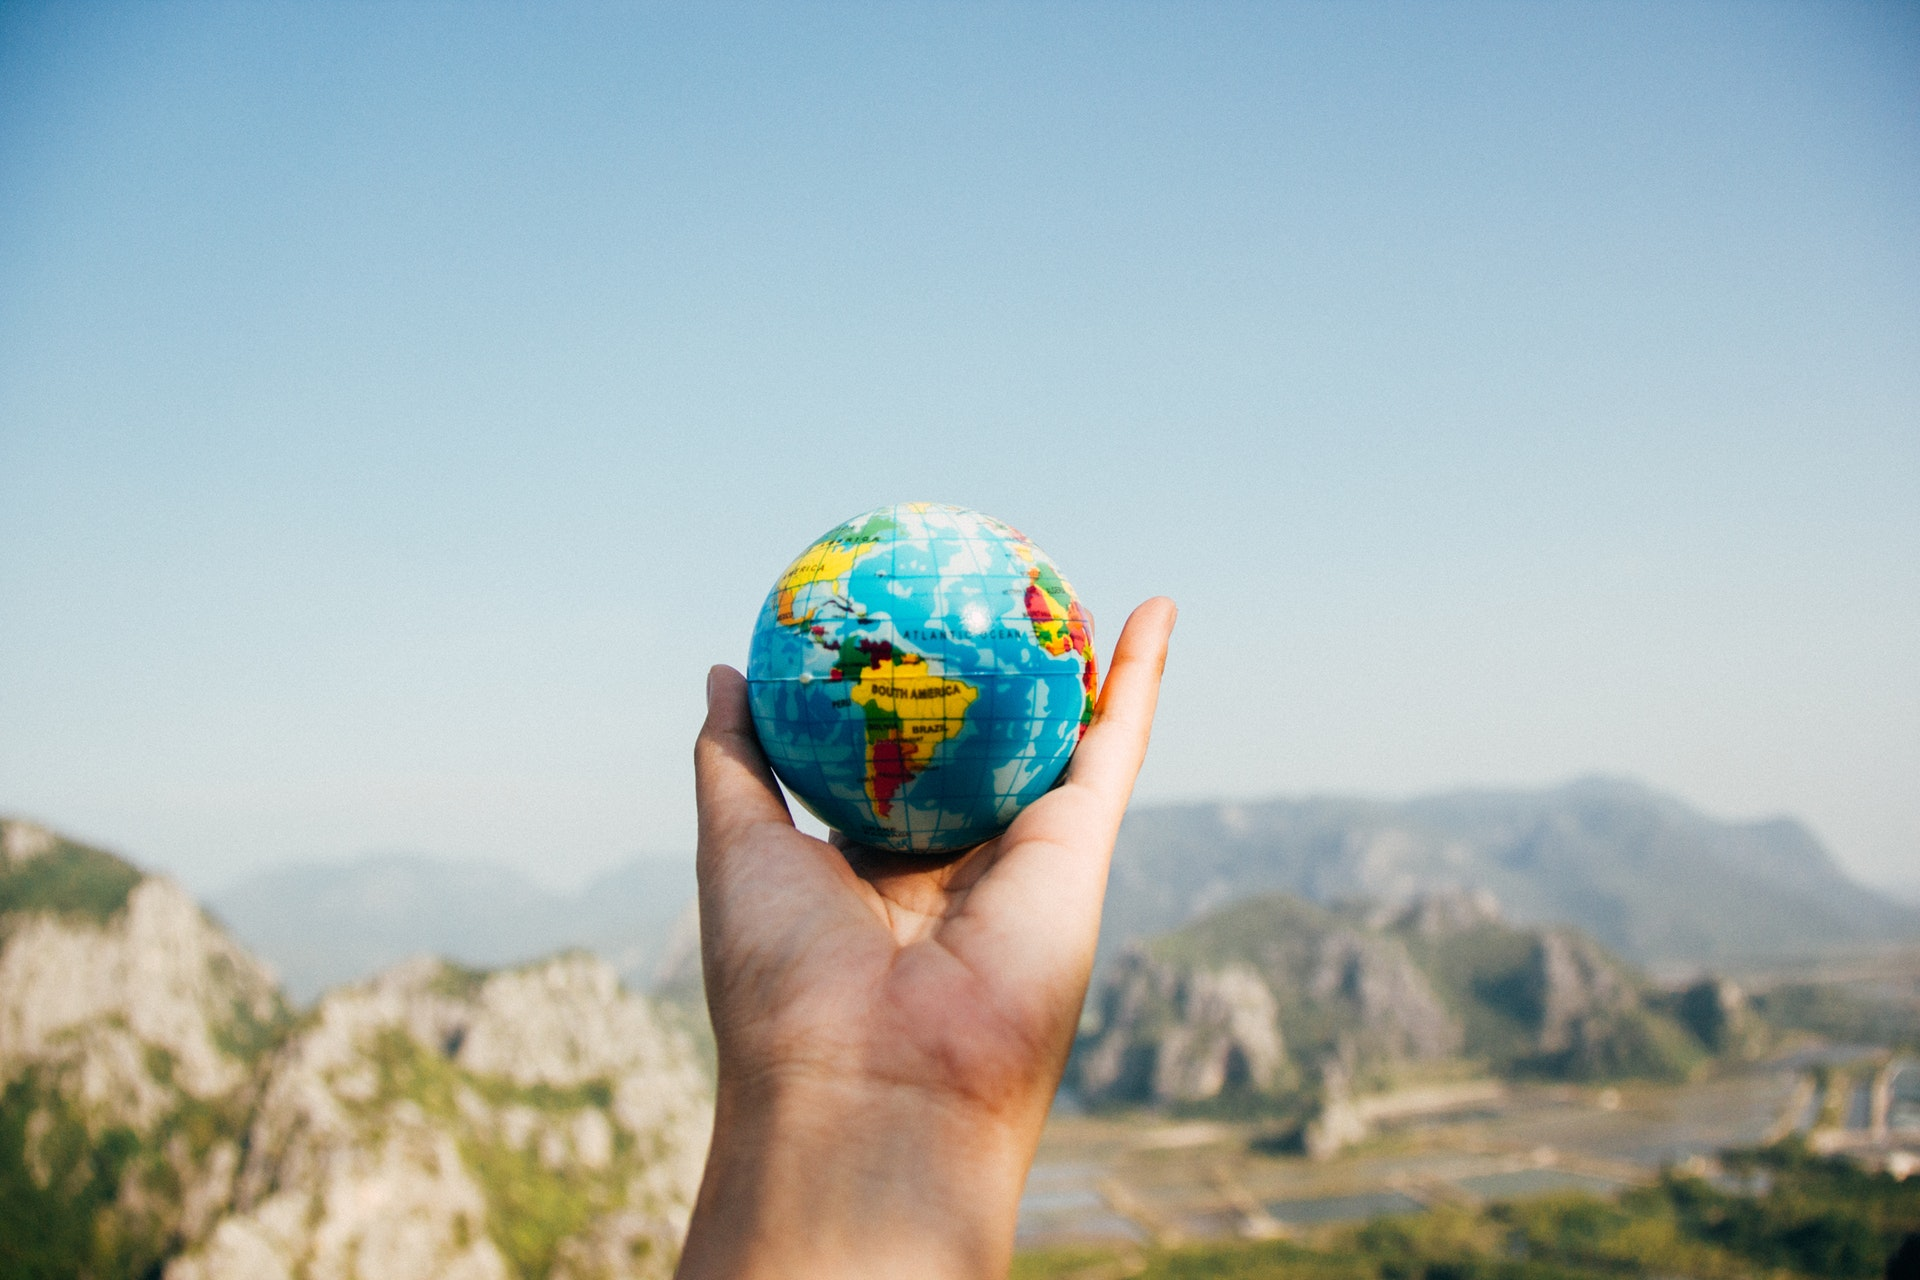 Five Worldly Freelance Careers You Can Do While Traveling Non-Stop